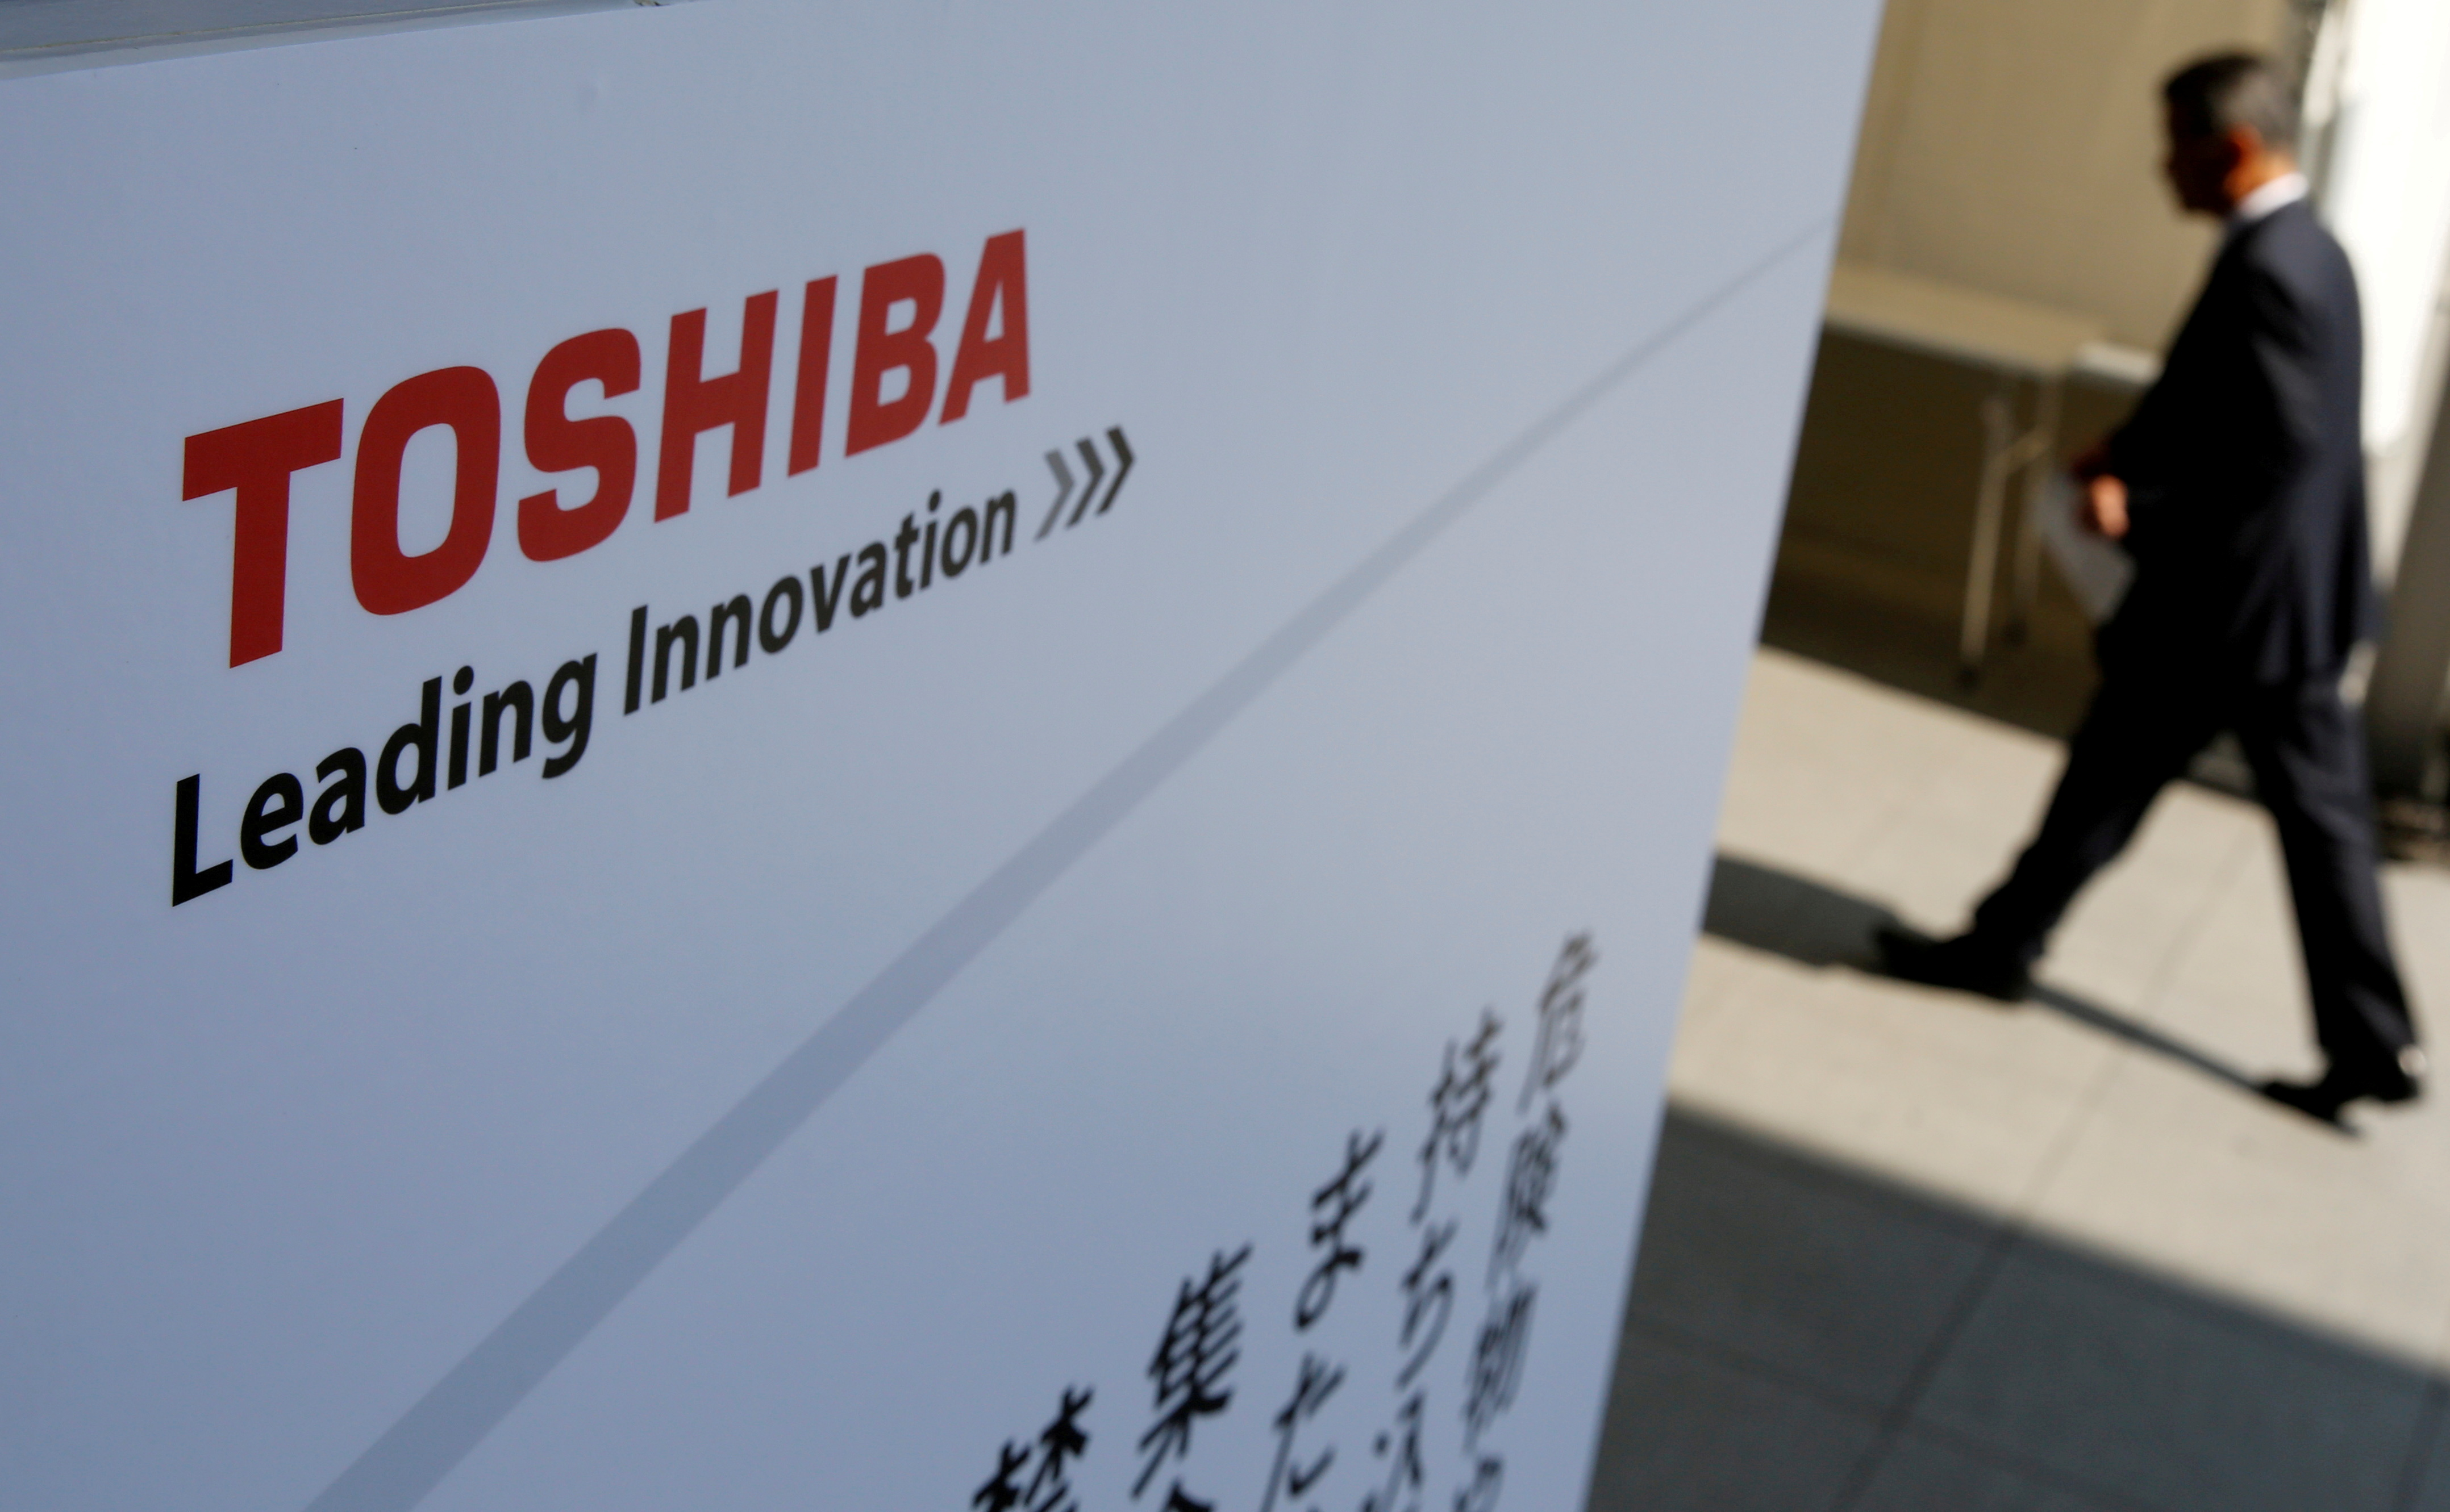 The logo of Toshiba is seen as a shareholder arrives at an extraordinary shareholders meeting in Chiba, Japan, March 30, 2017. REUTERS/Toru Hanai//File Photo